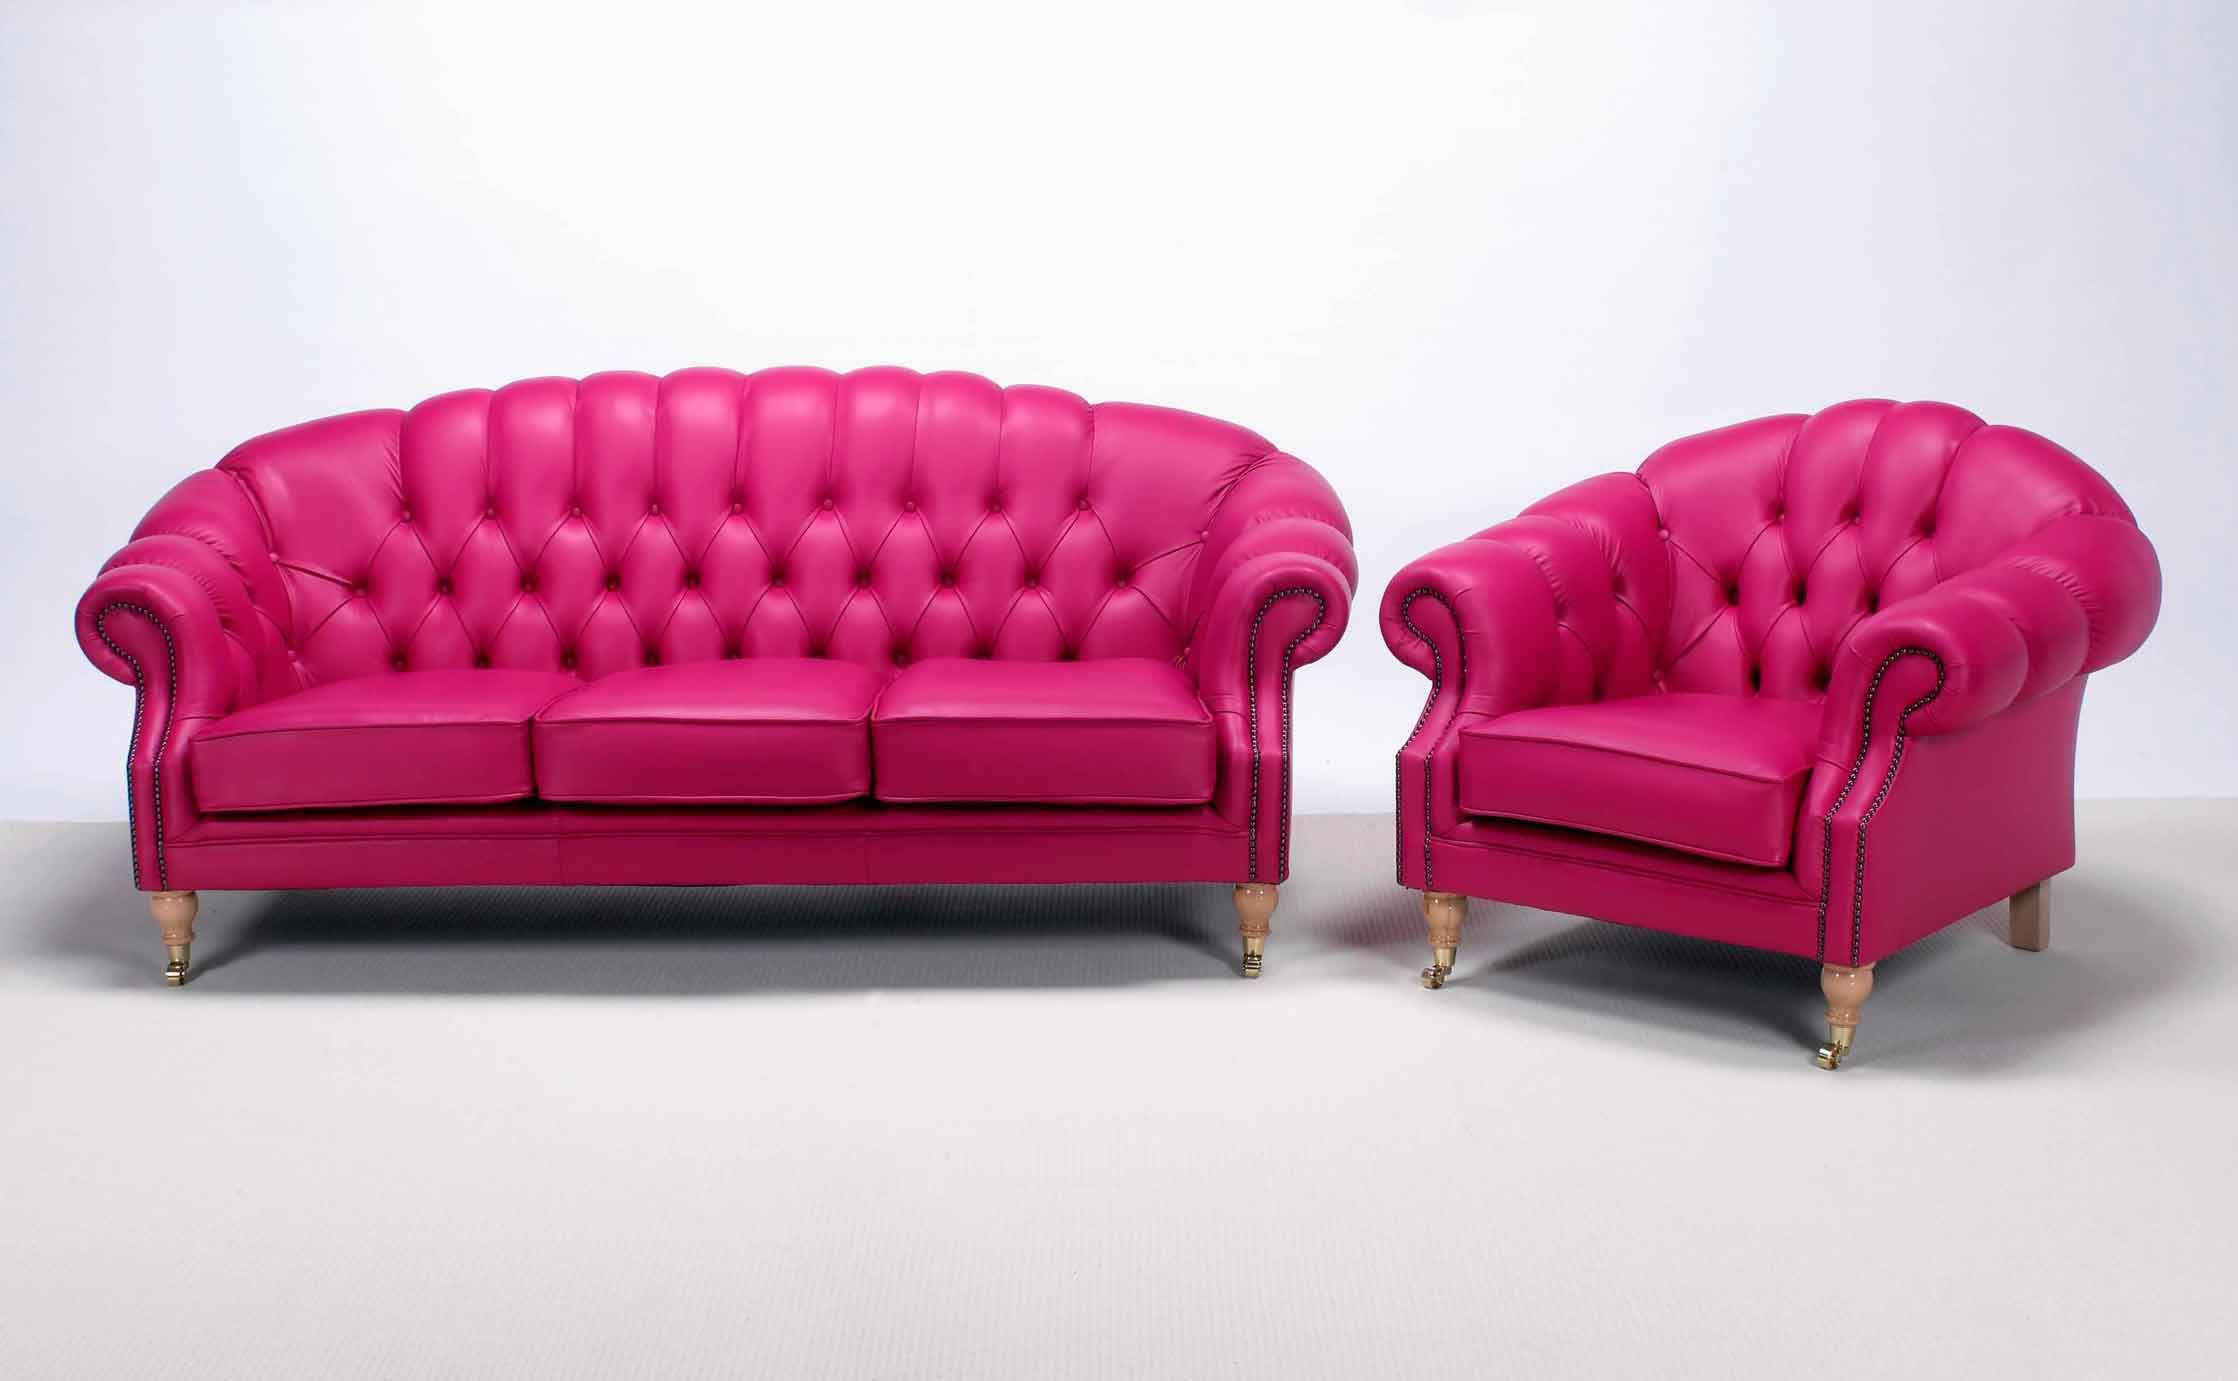 Leather Chesterfield Sofas By Chesterfield Sofa Company Pink Leather Sofas Leather Sofa Set Fabric Chesterfield Sofa